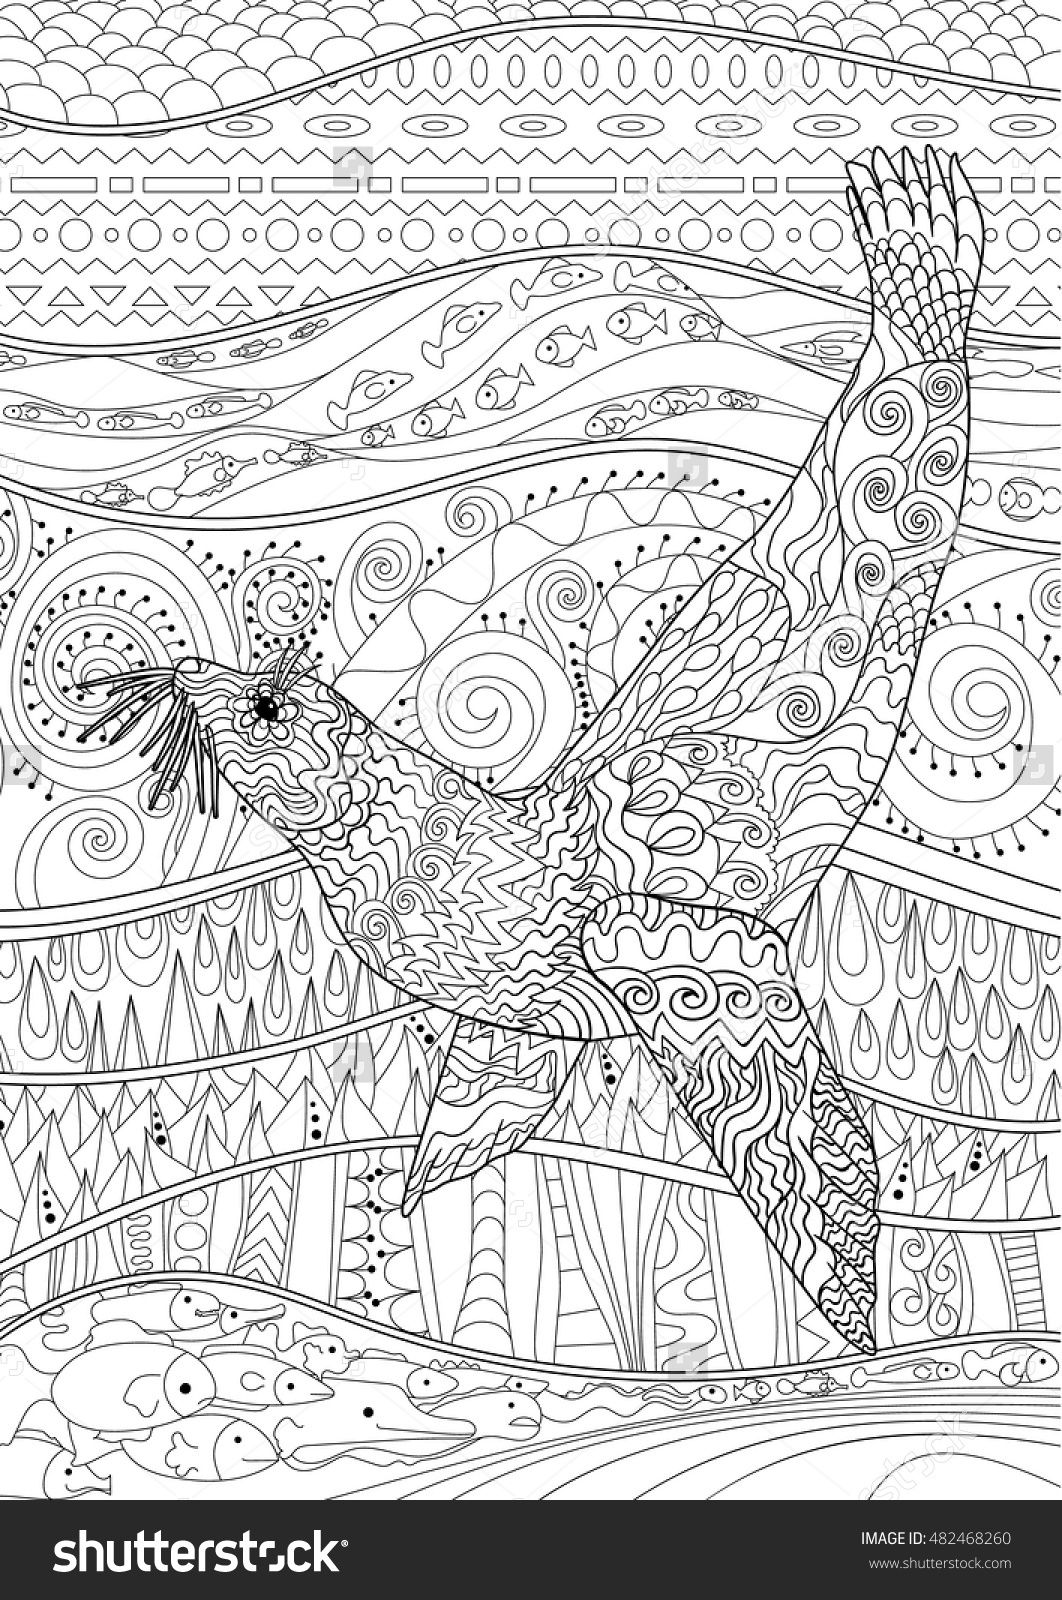 hand drawn swimming seal coloring page zendoodle style